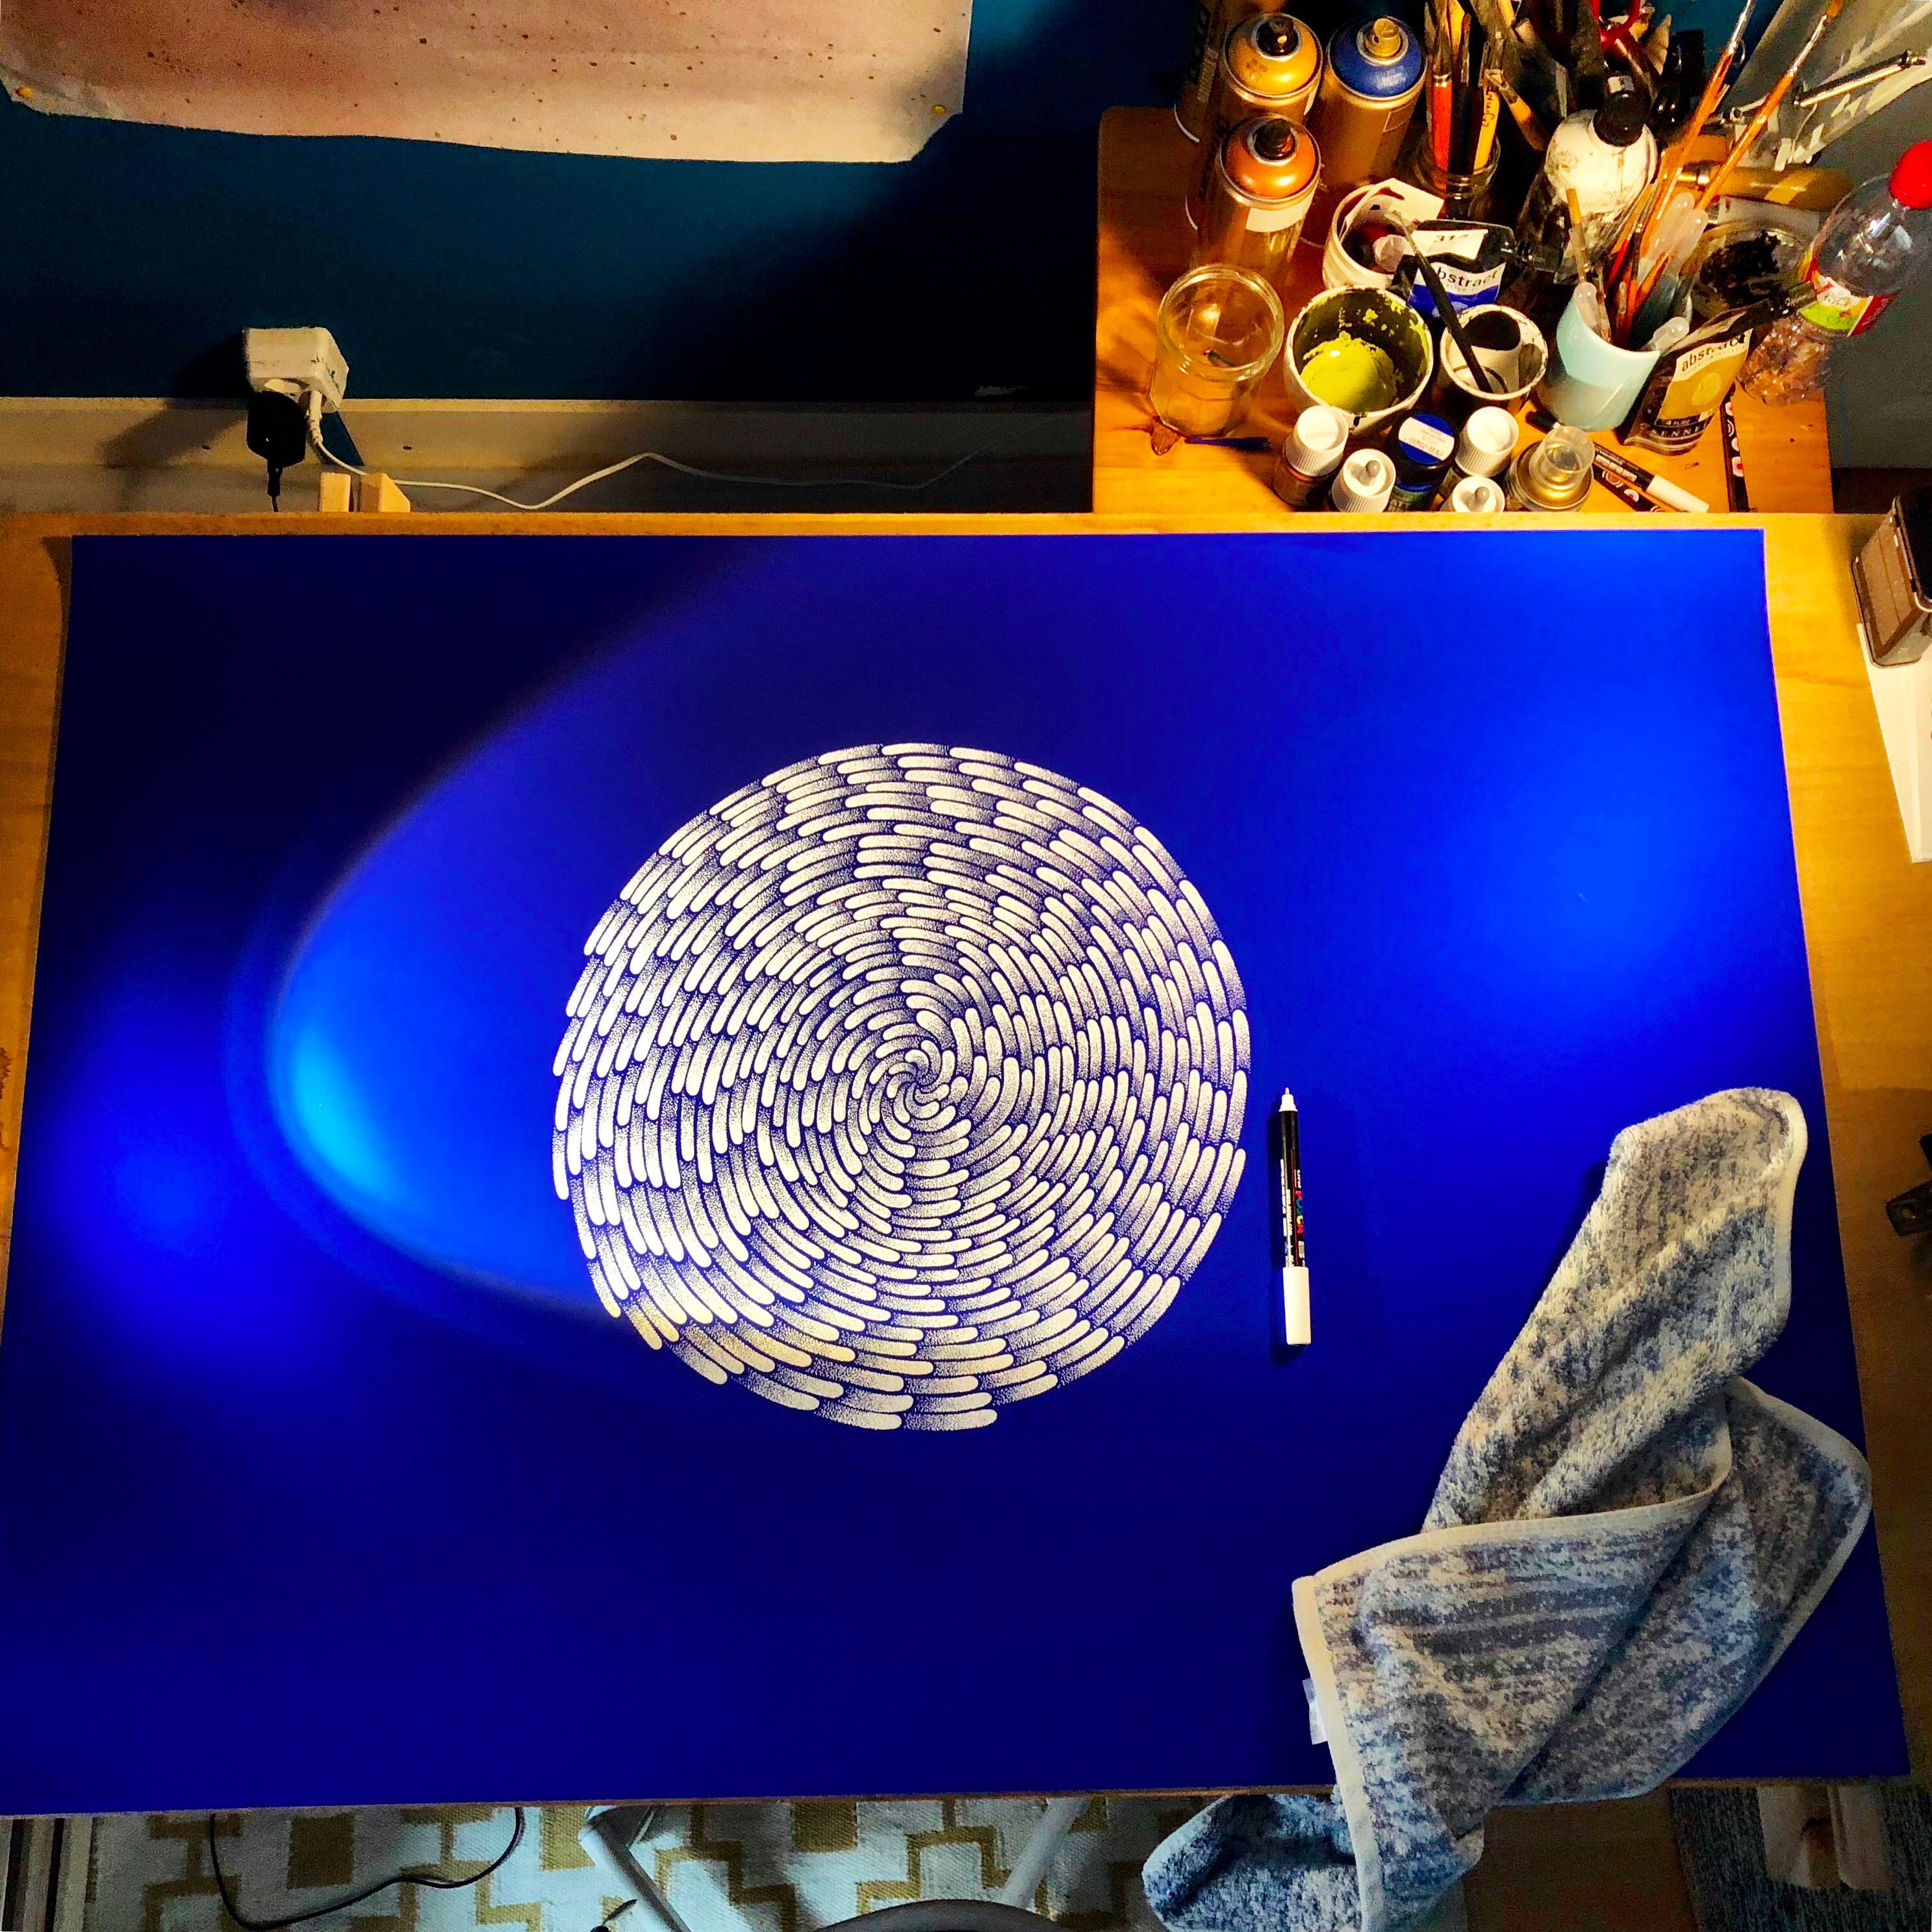 cosmic-blue-dot-drawing-random-tales-cosmic-blue-planet-paper-arjowiggings-atelier-eaux-vives-compressor-compressor